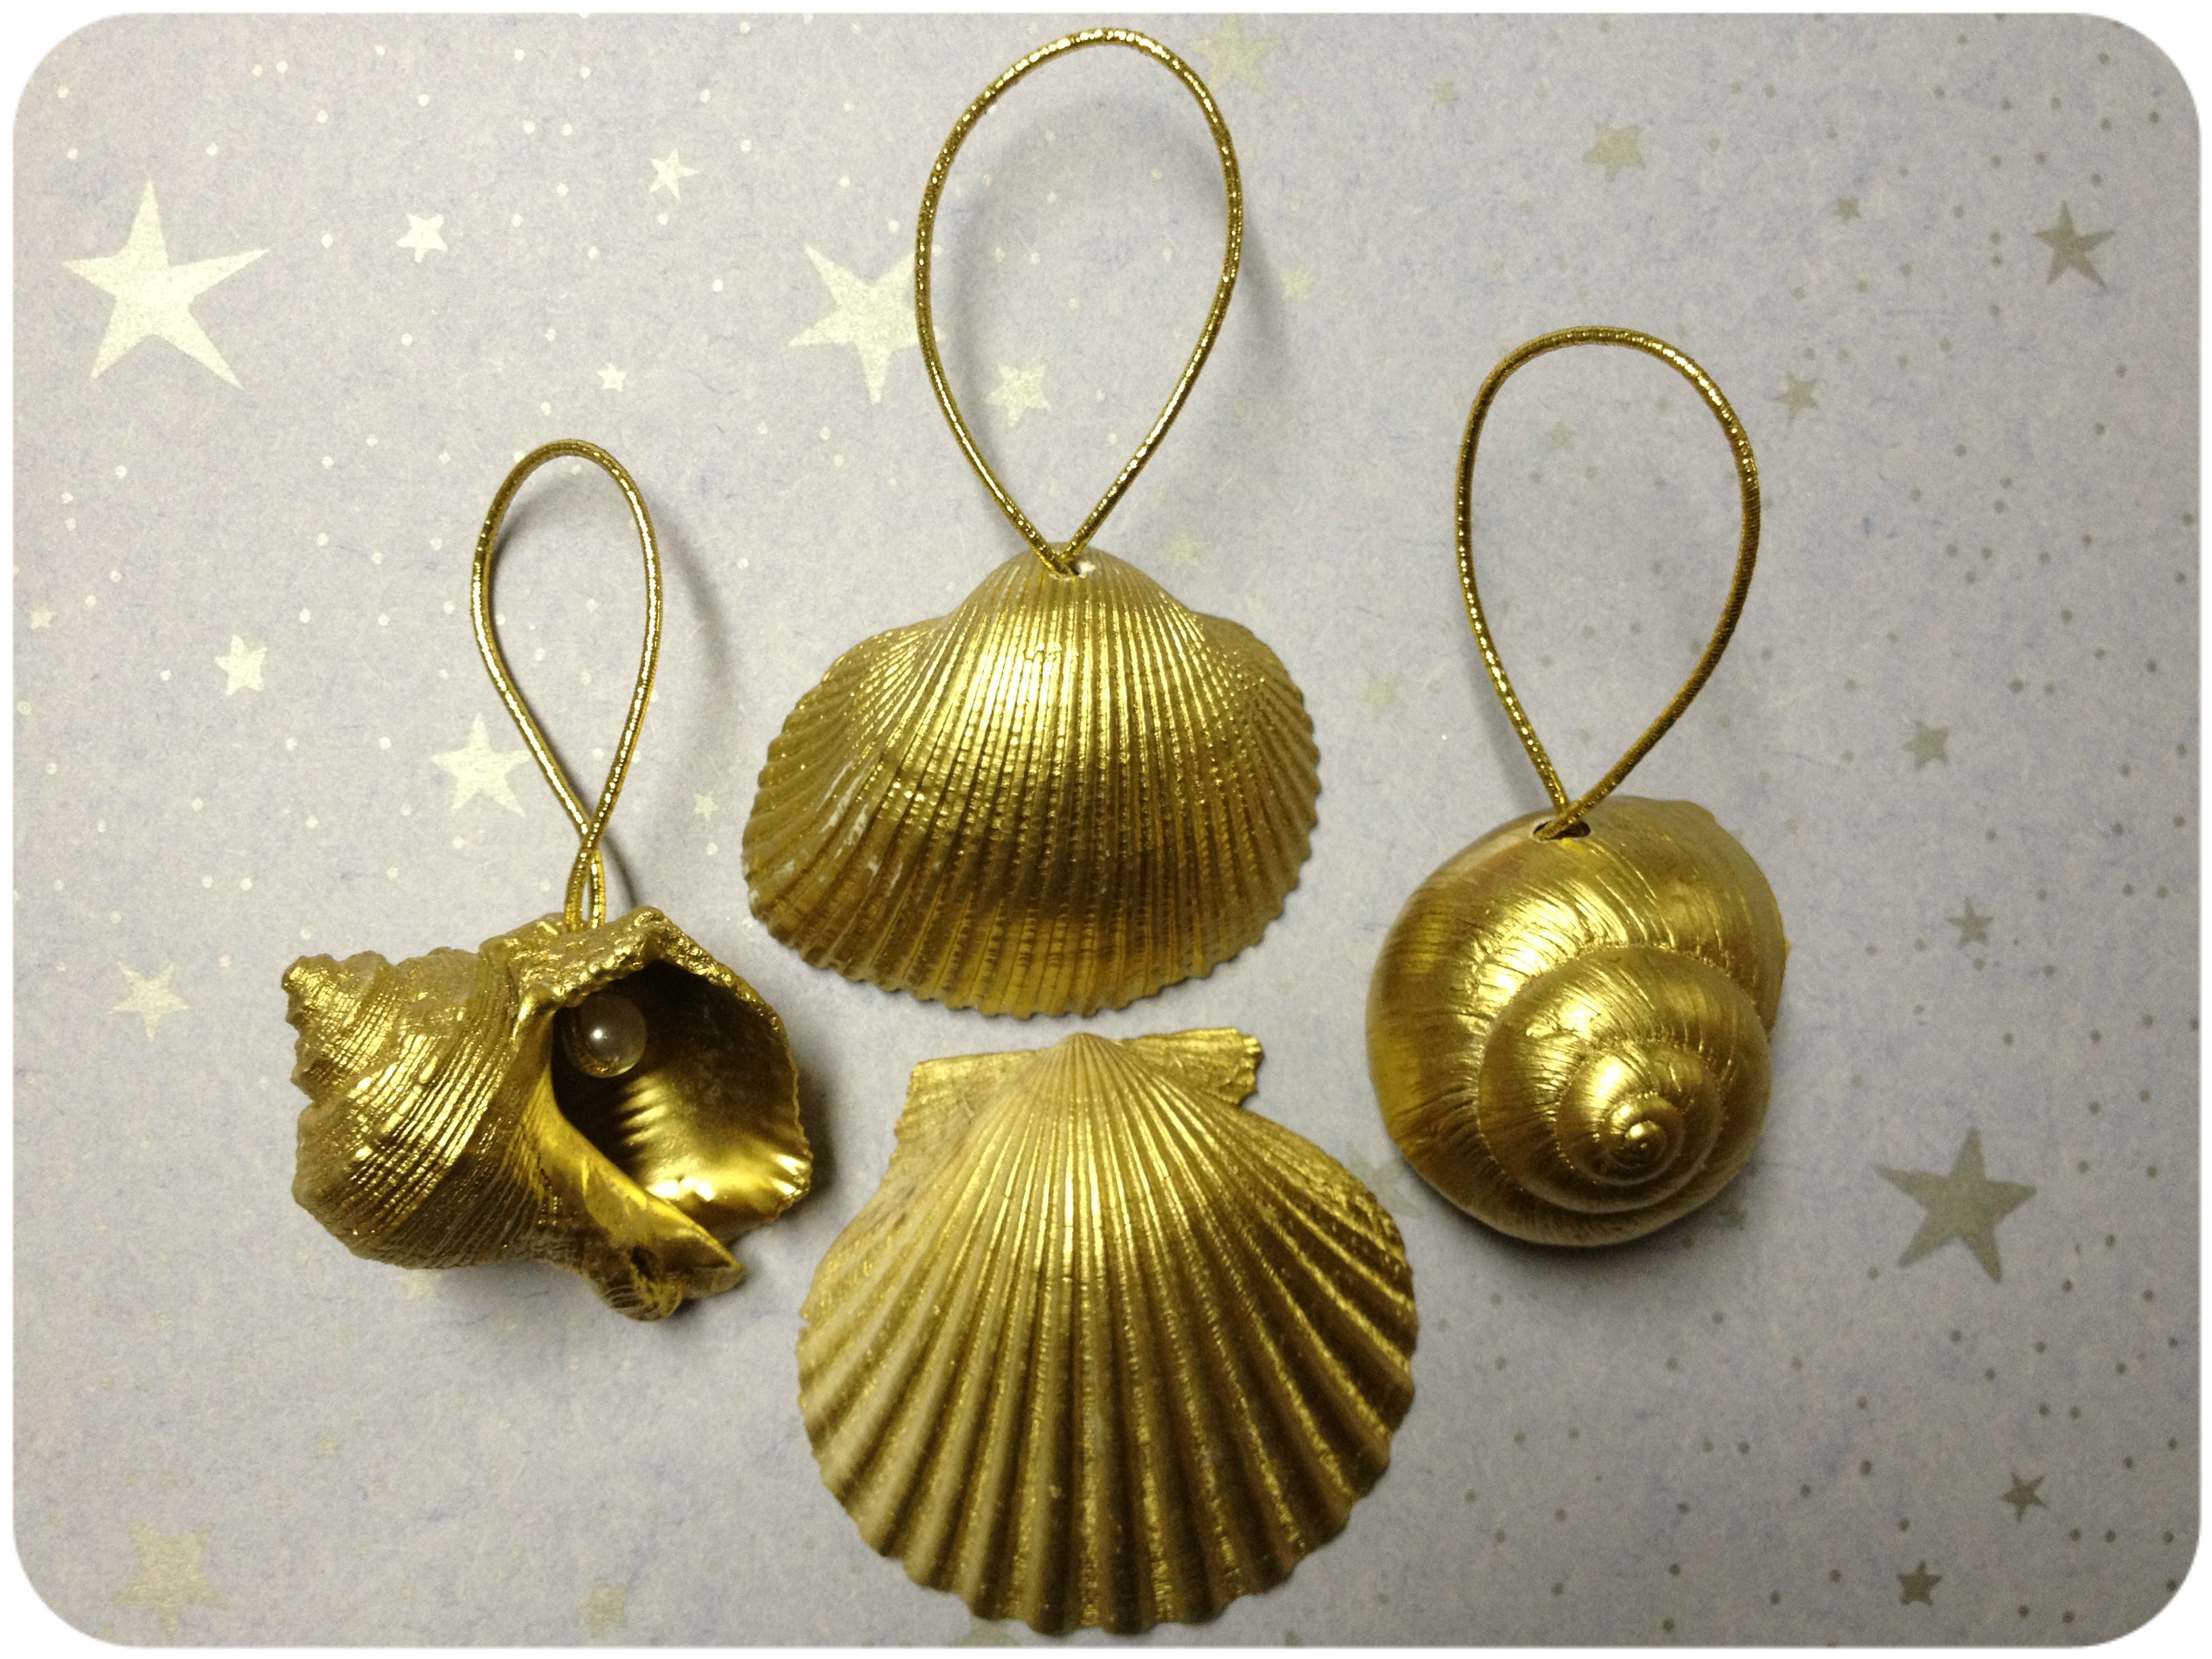 Sand dollar ornament - These